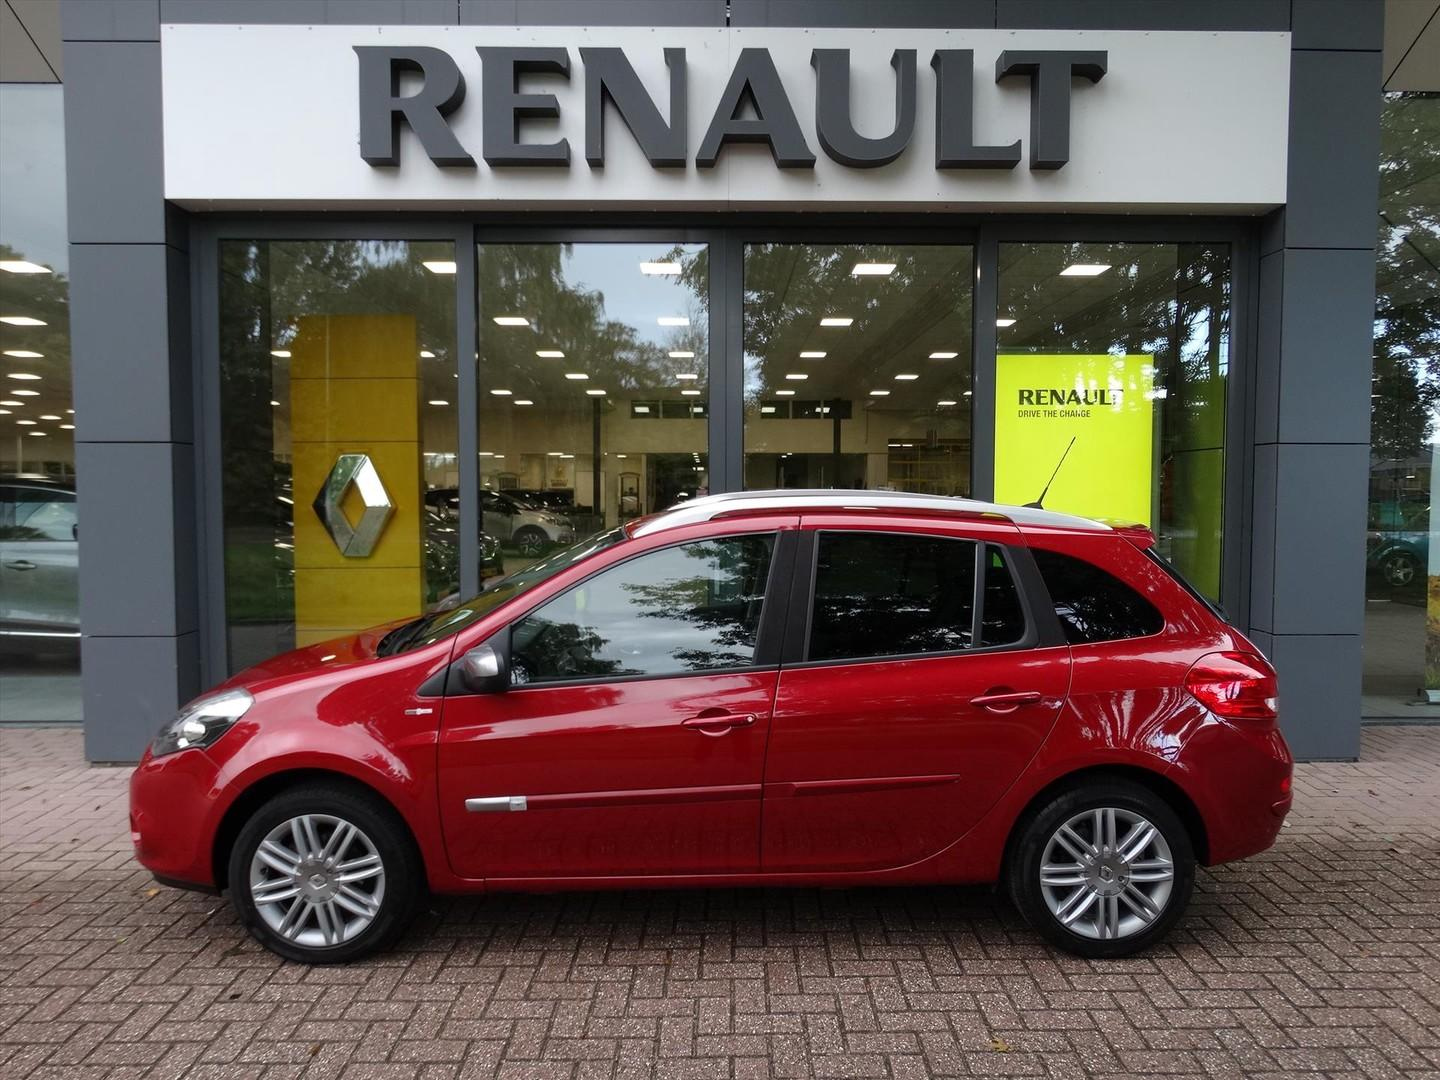 Renault Clio Iii estate tce 100 night & day